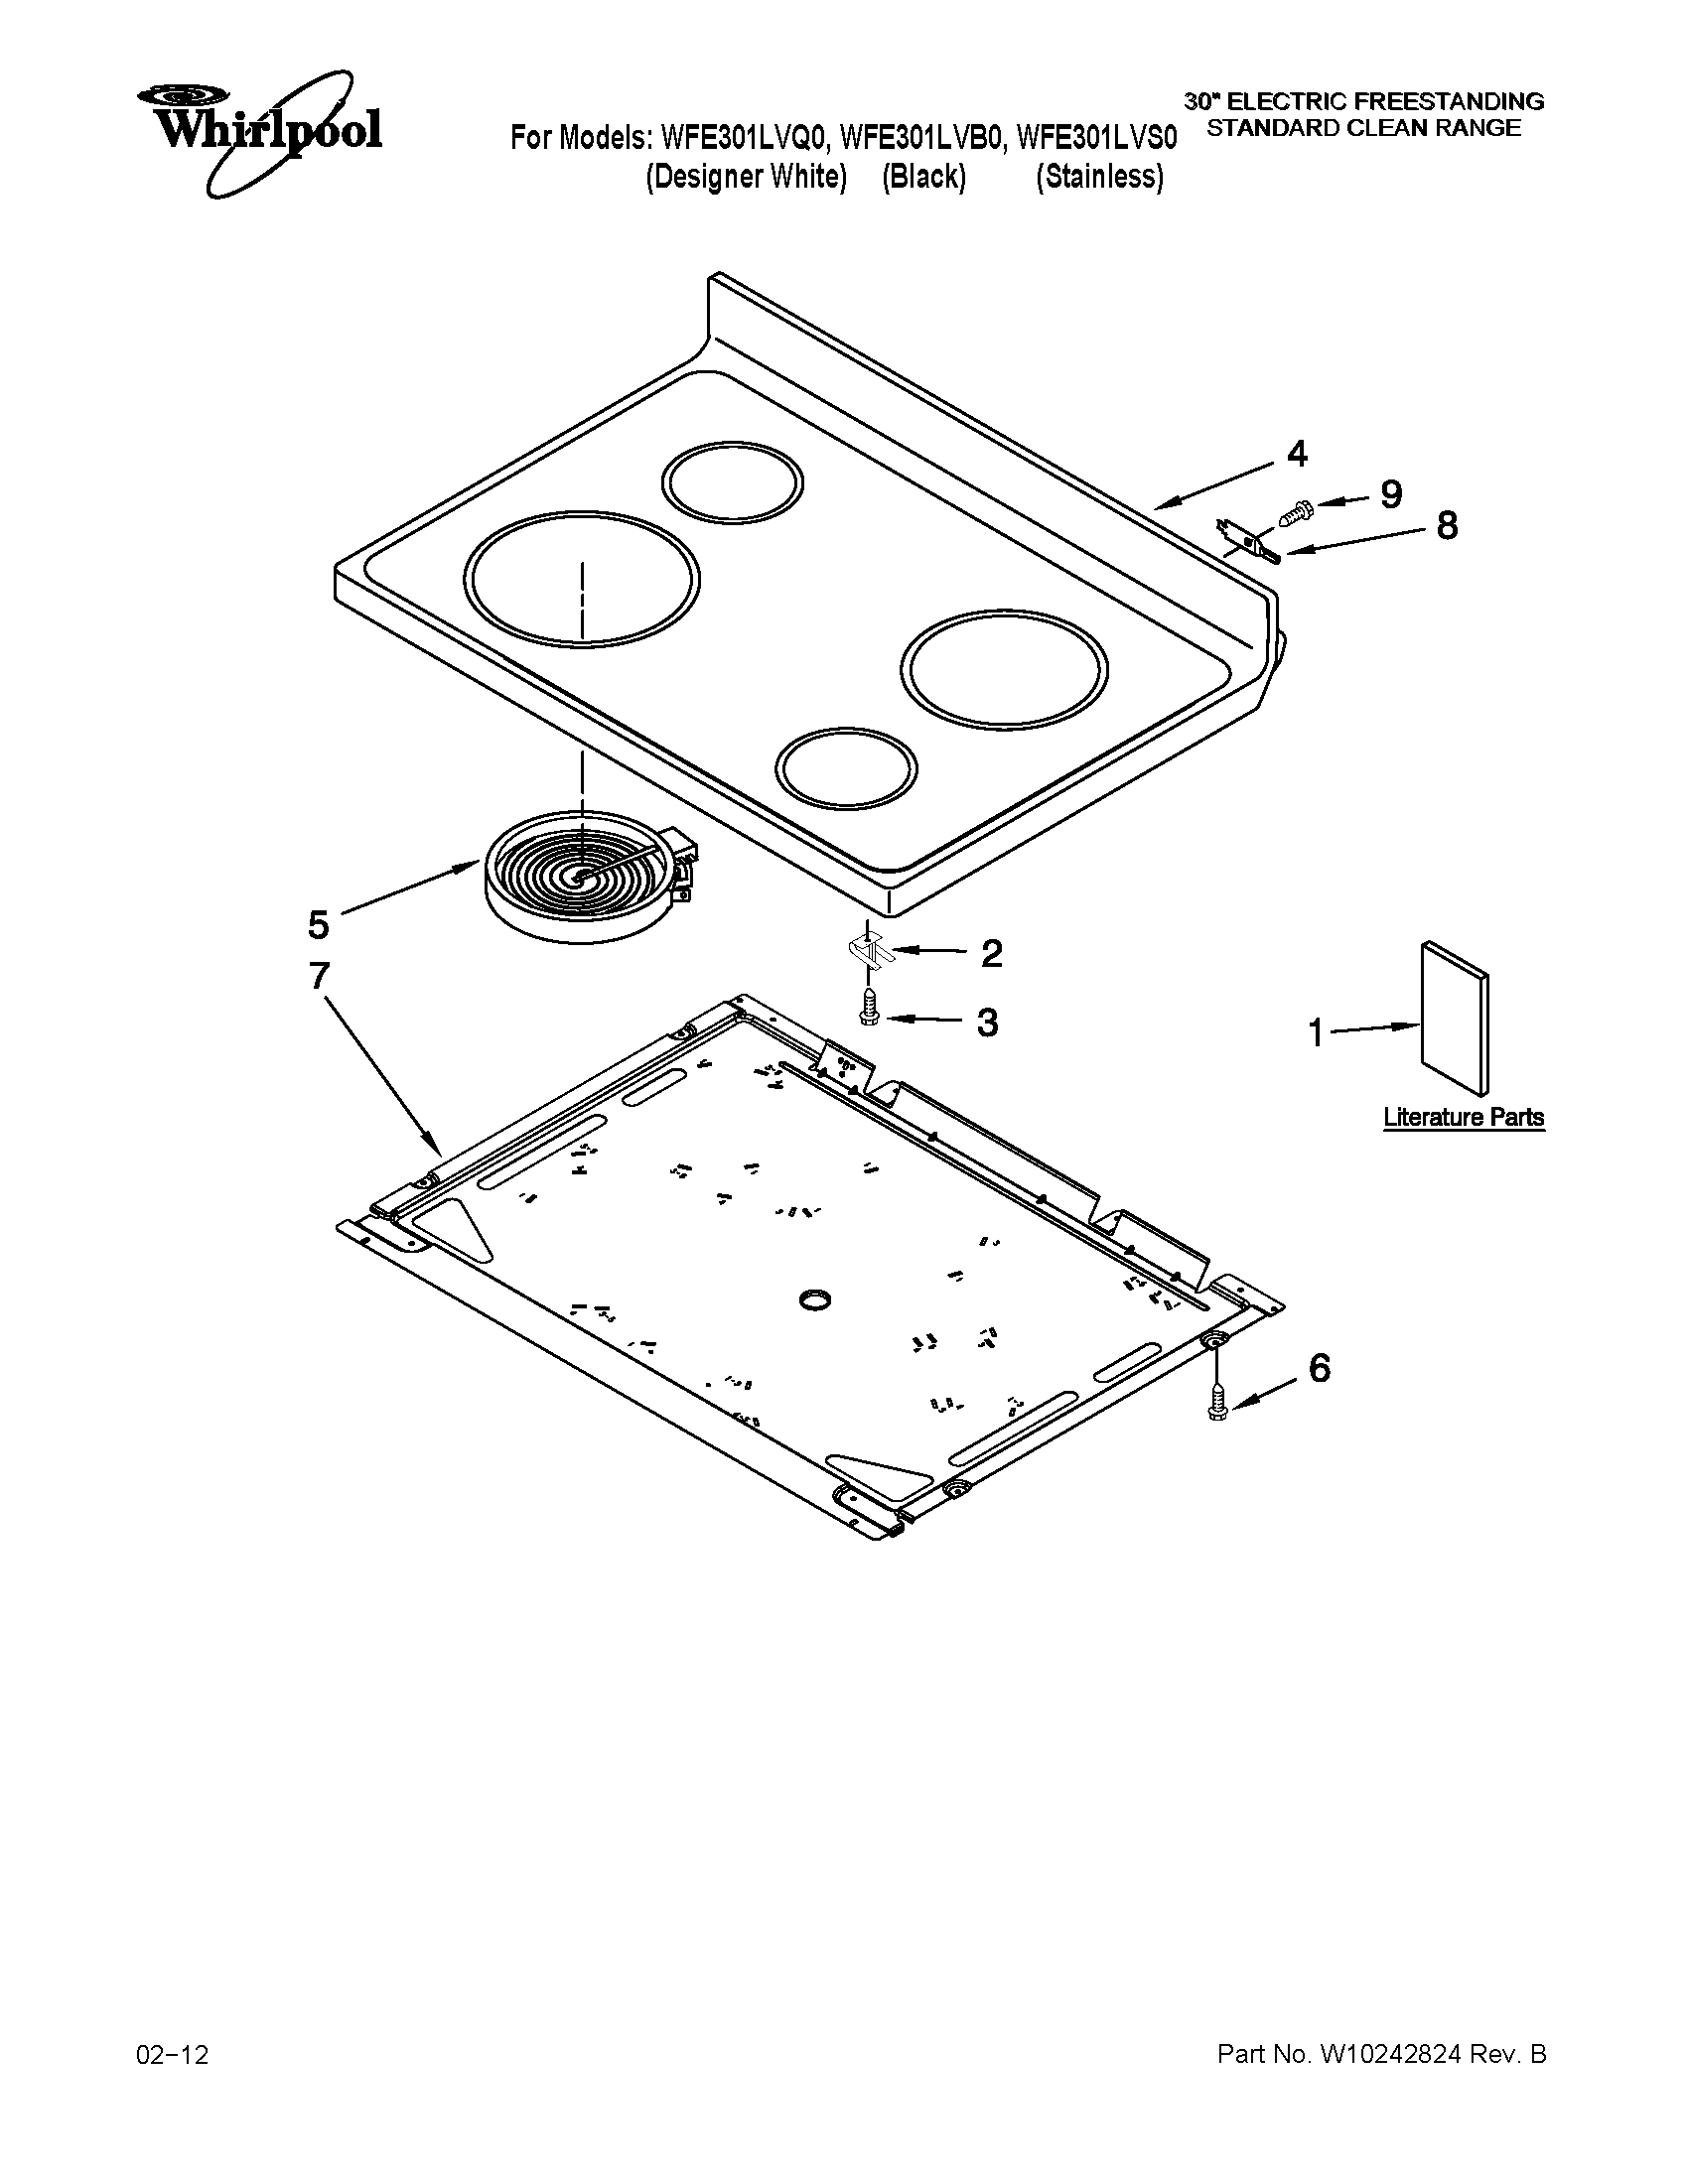 Whirlpool WFE301LVS0 cooktop parts diagram